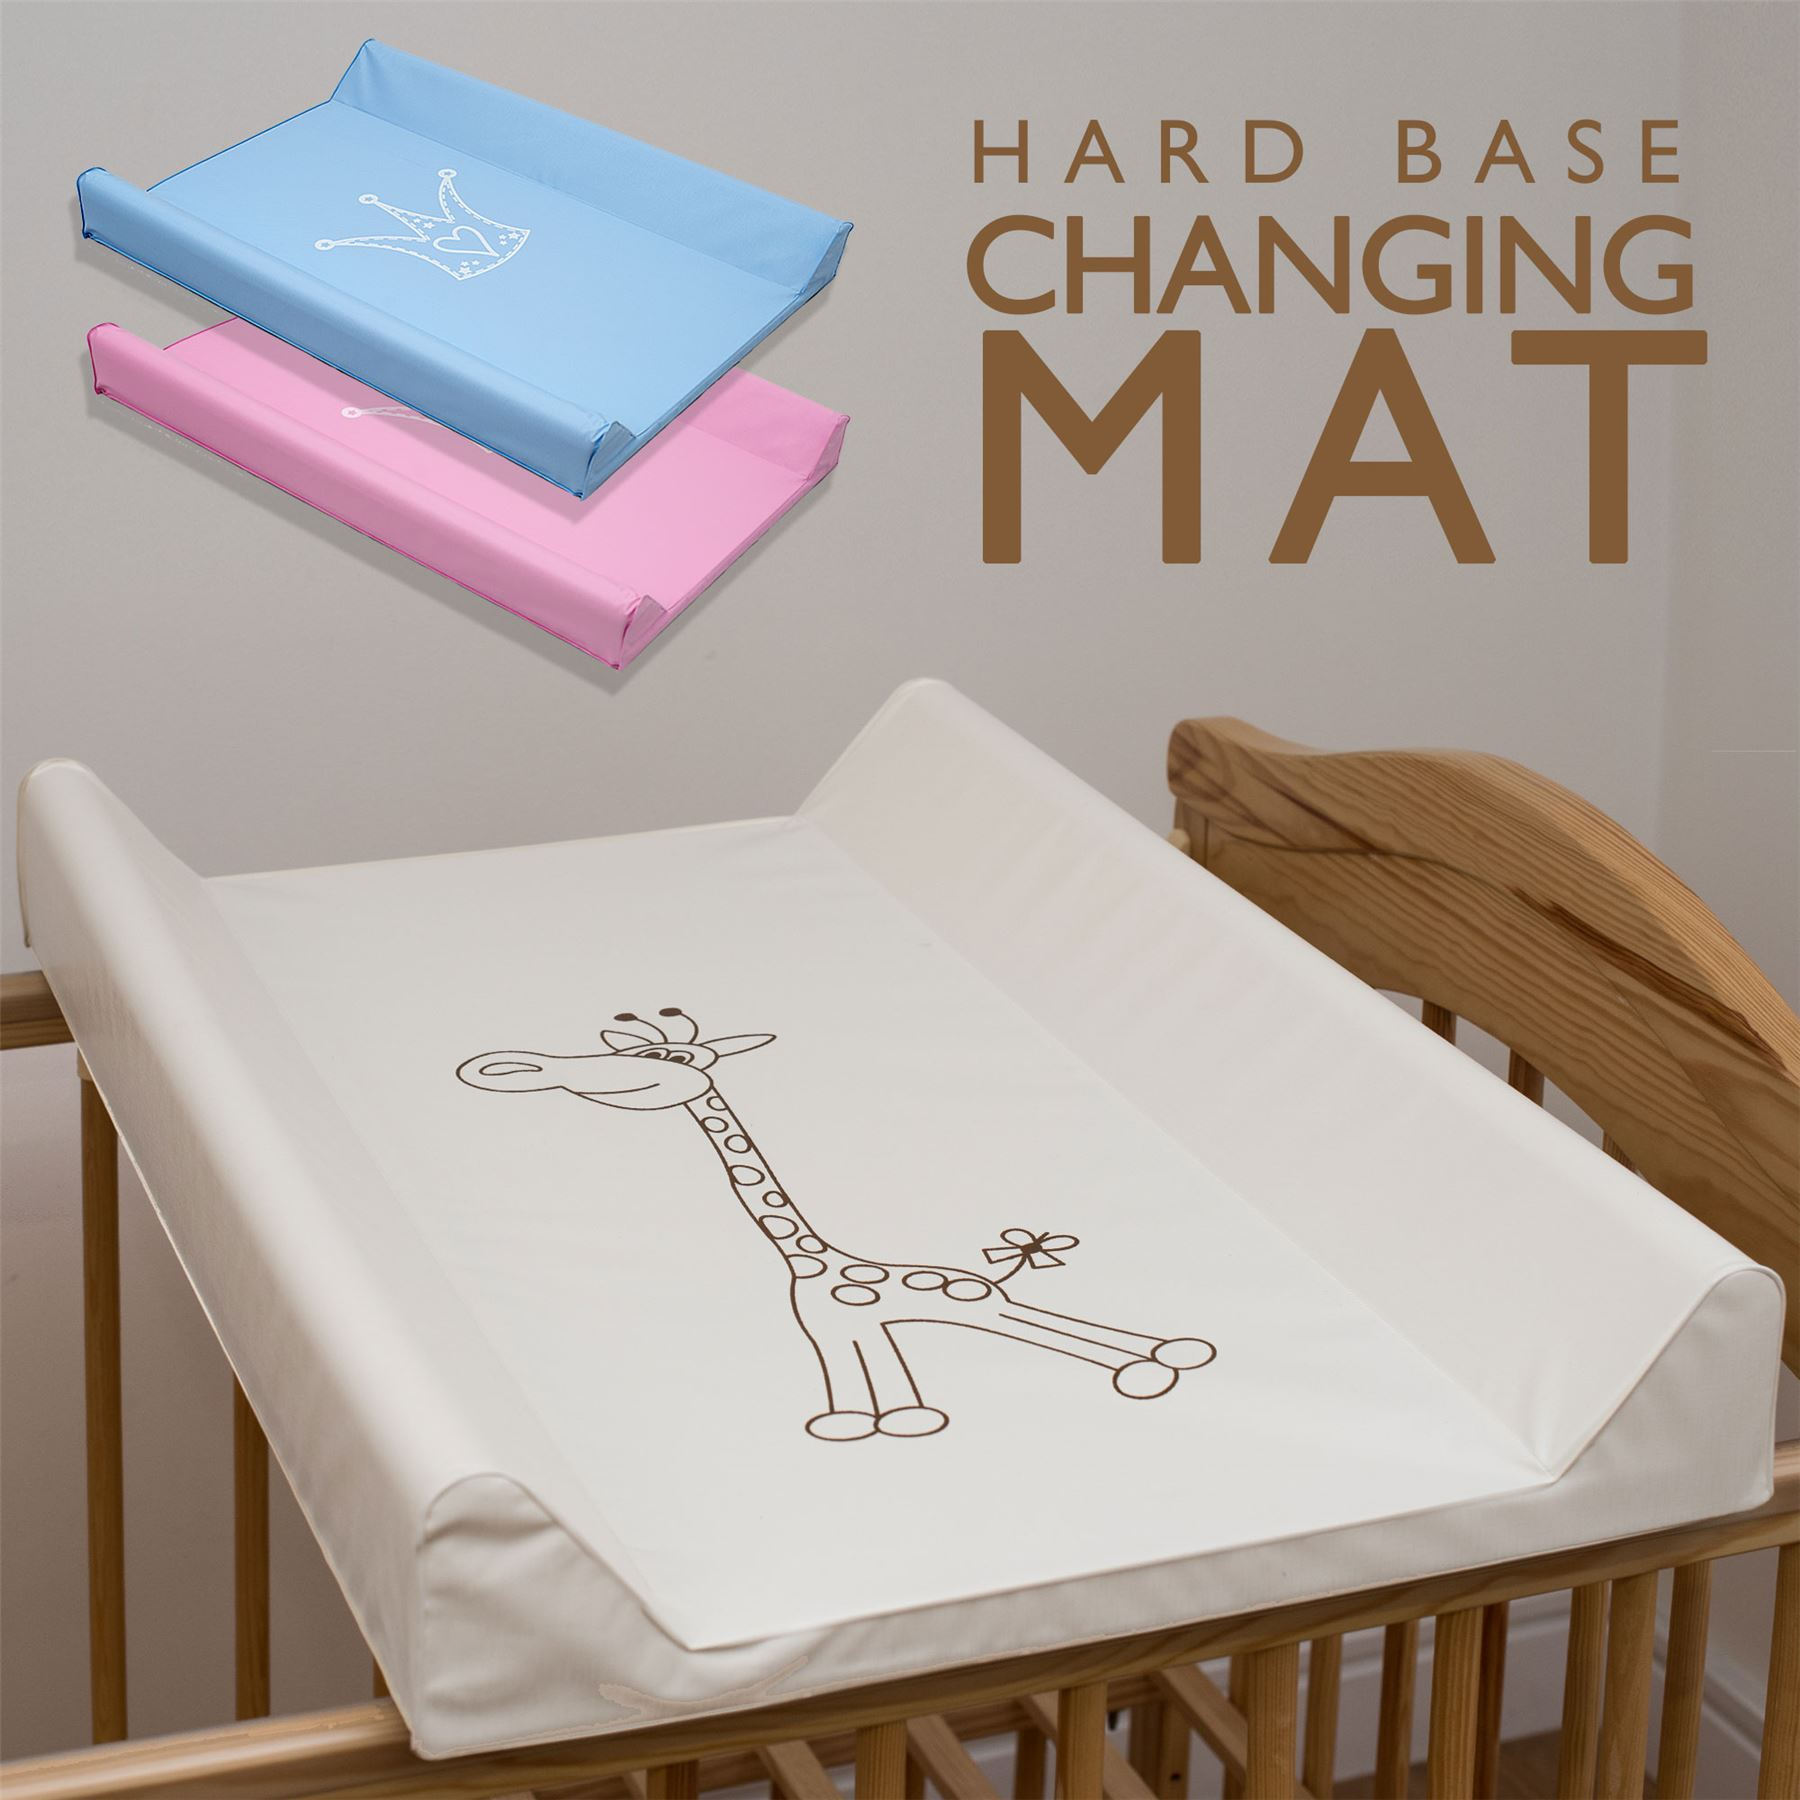 Baby Hard Base Changing Mat Cot Cot Bed Top Changer Unit - Baby Change Mats